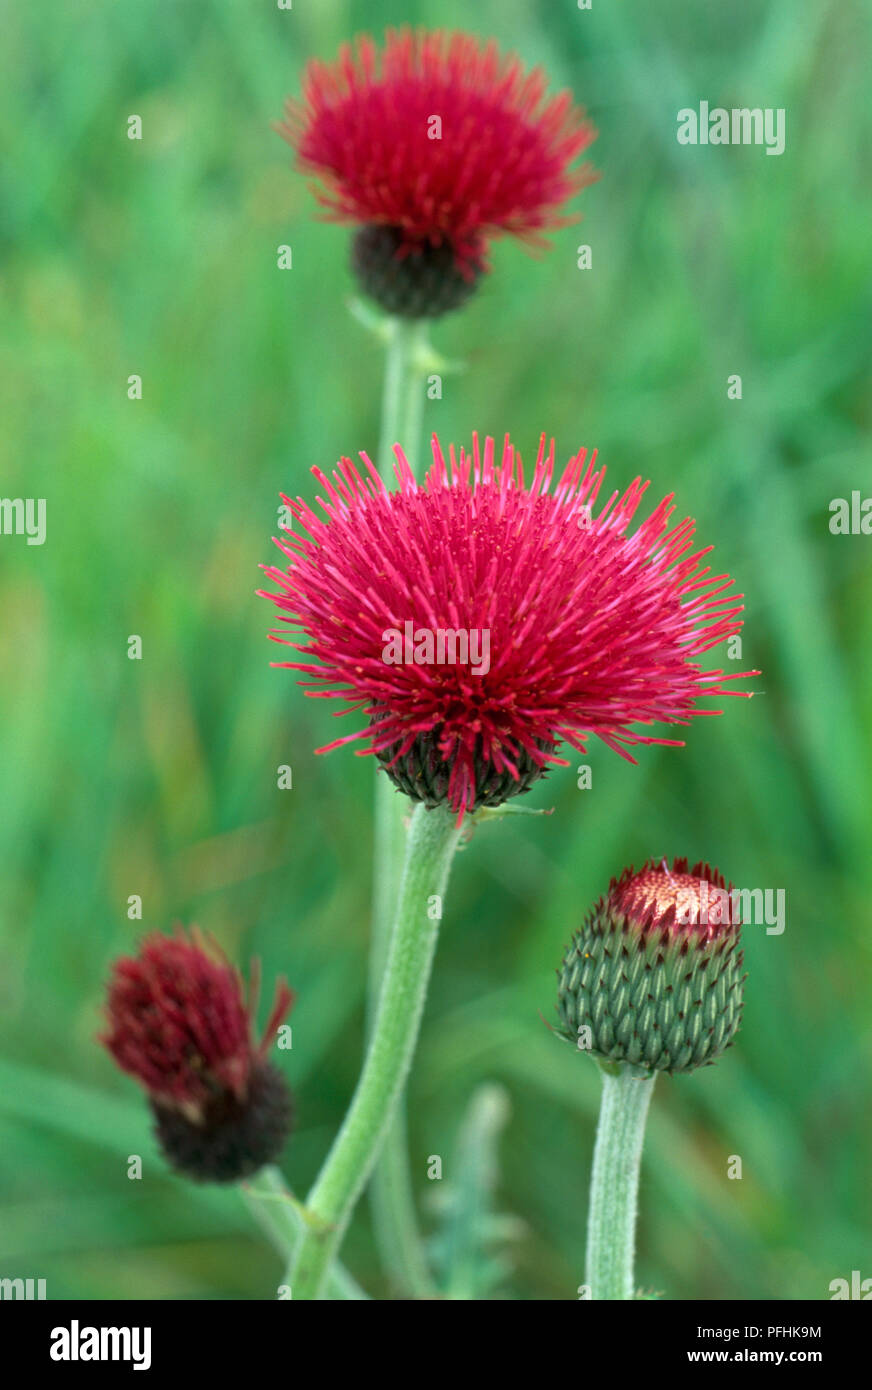 Cirsium rivulare 'Atropurpureum', pink thistle flower heads at different stages of growth, close-up - Stock Image